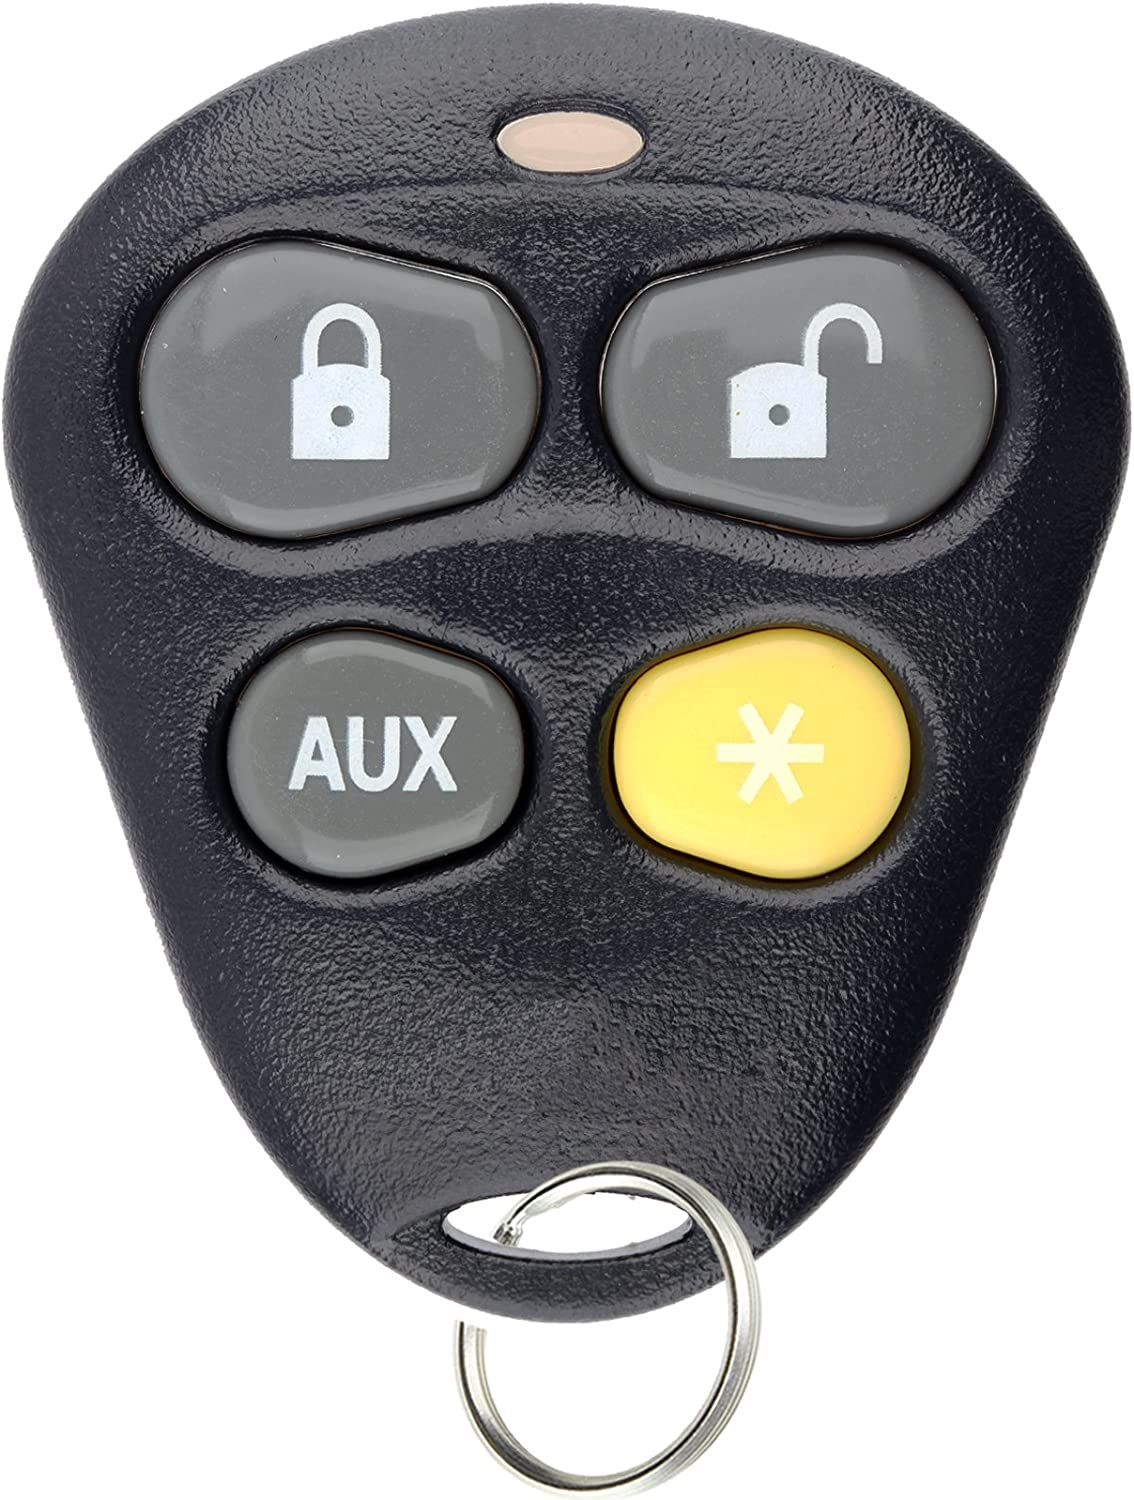 For Aftermarket DEI Alarm Systems Keyless Entry Remote Key Fob 4btn W//Orange Button EZSDEI474V RPN 474V